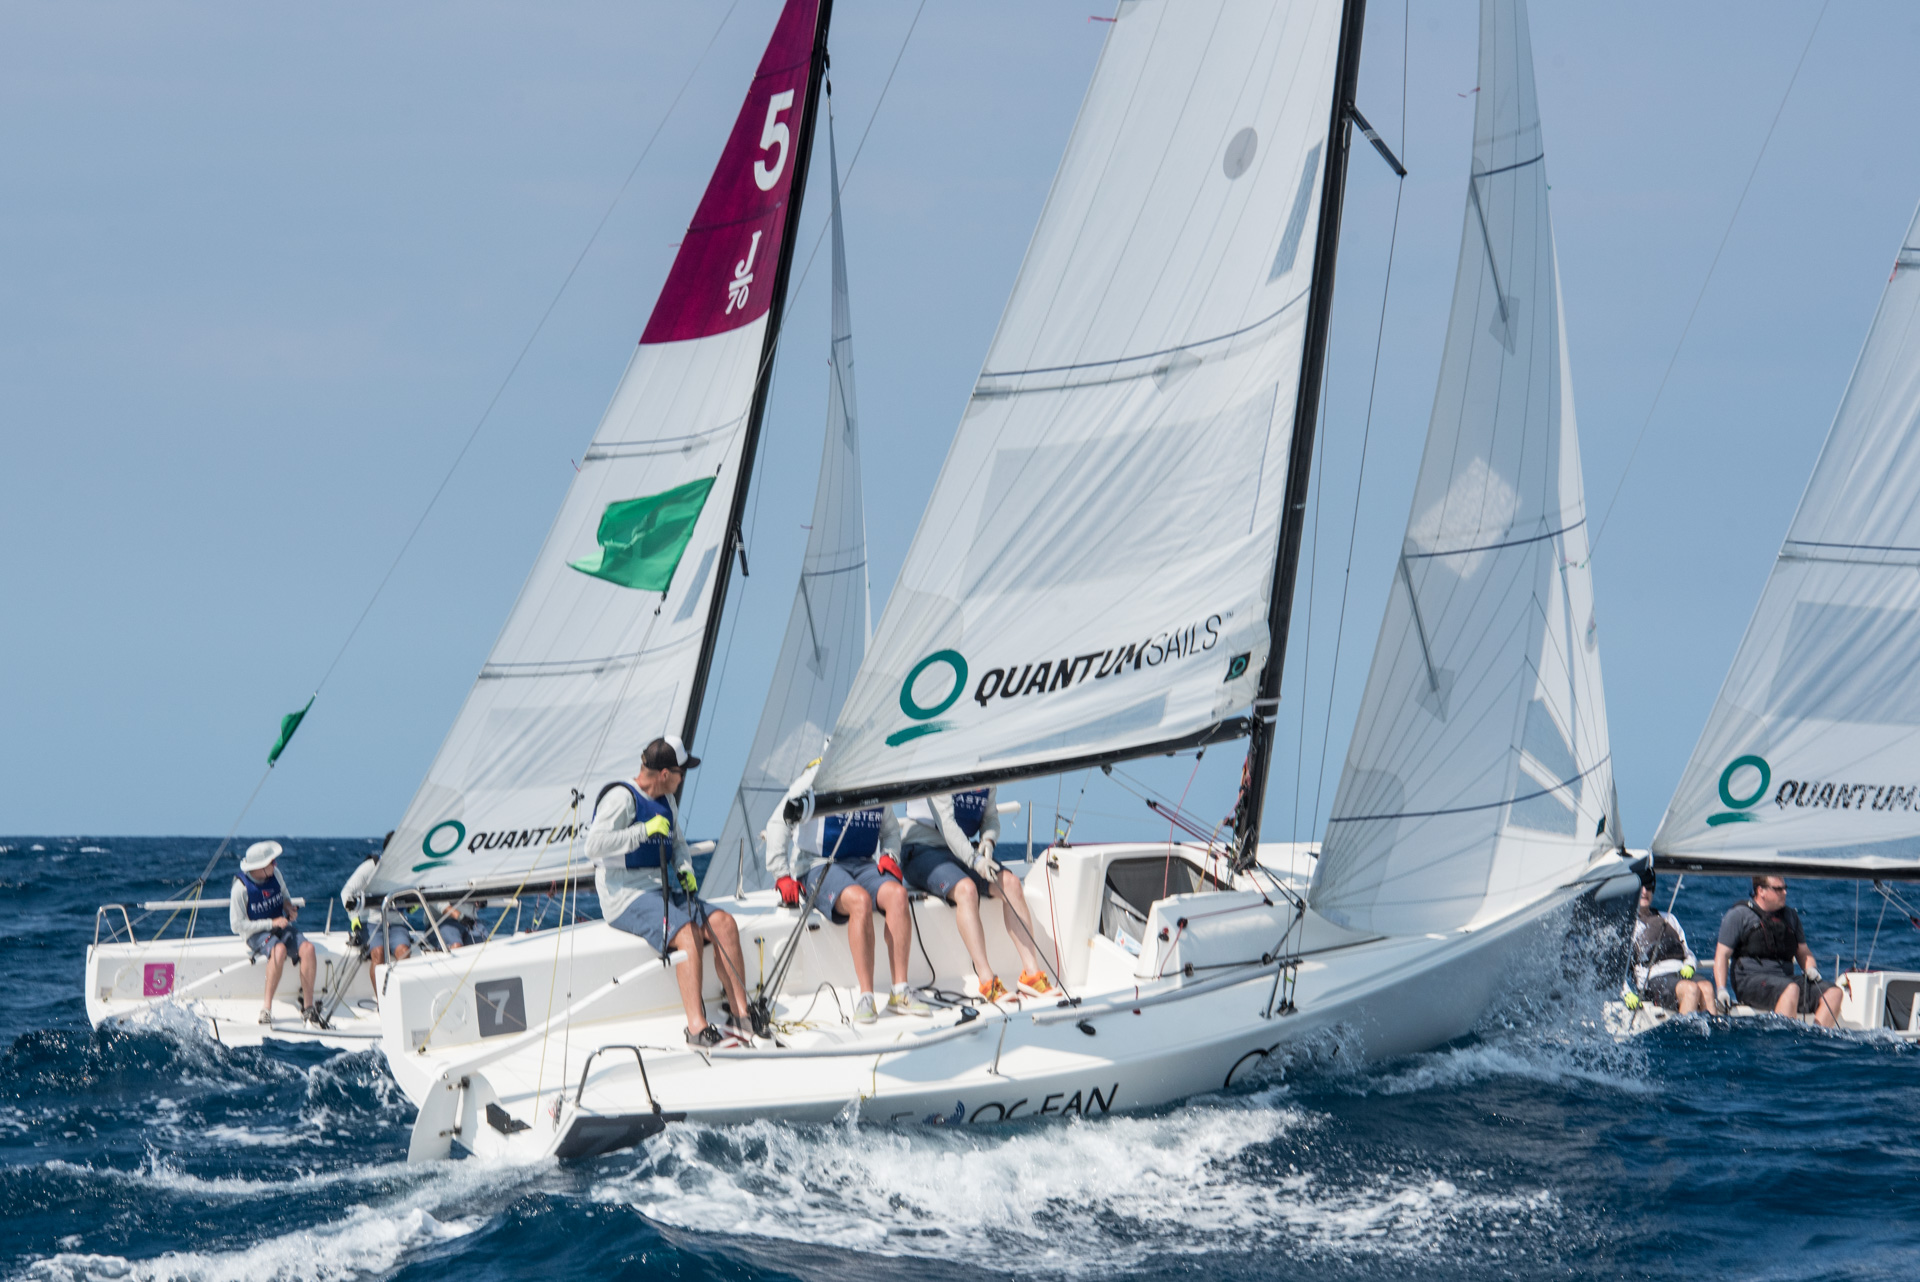 Audi Invitational<BR /> Team Racing Challenge - Porto Cervo 2018 - 5